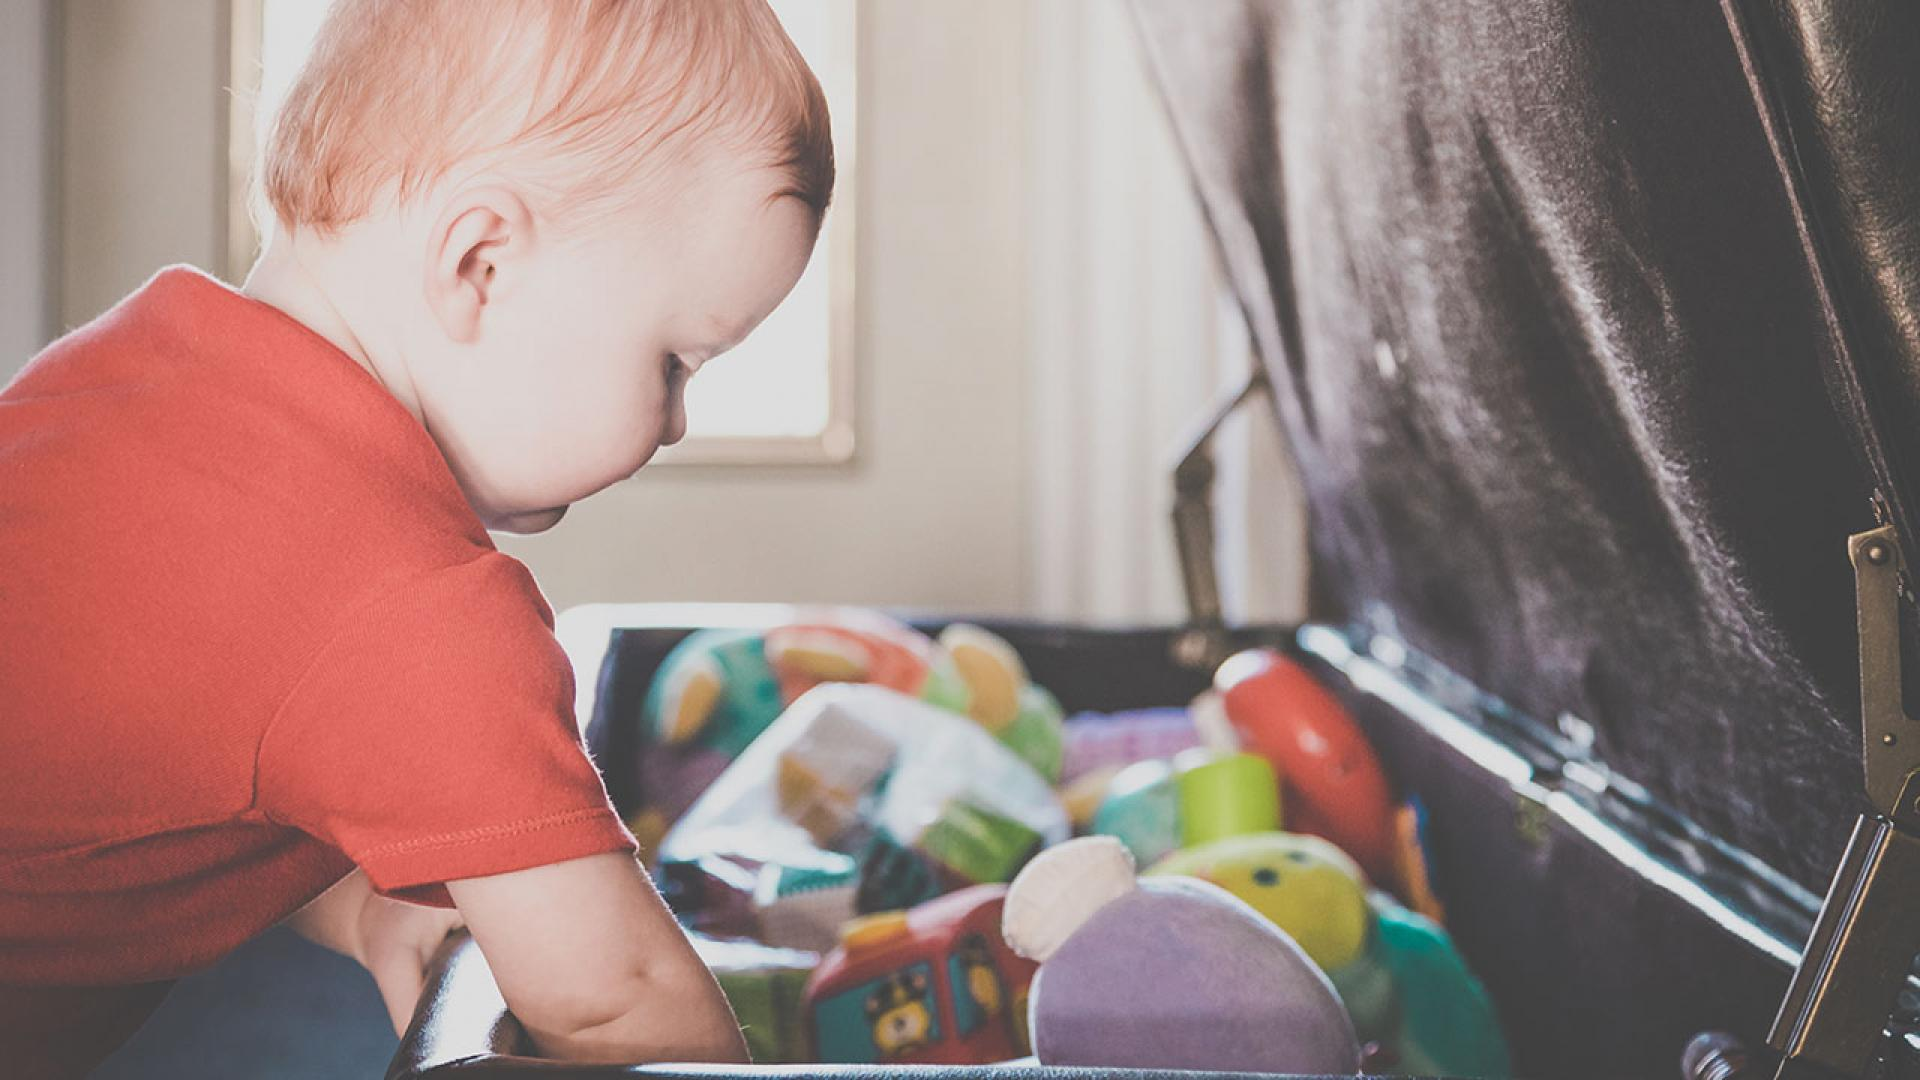 Baby Boy Exploring and Looking Inside a full Toy Box